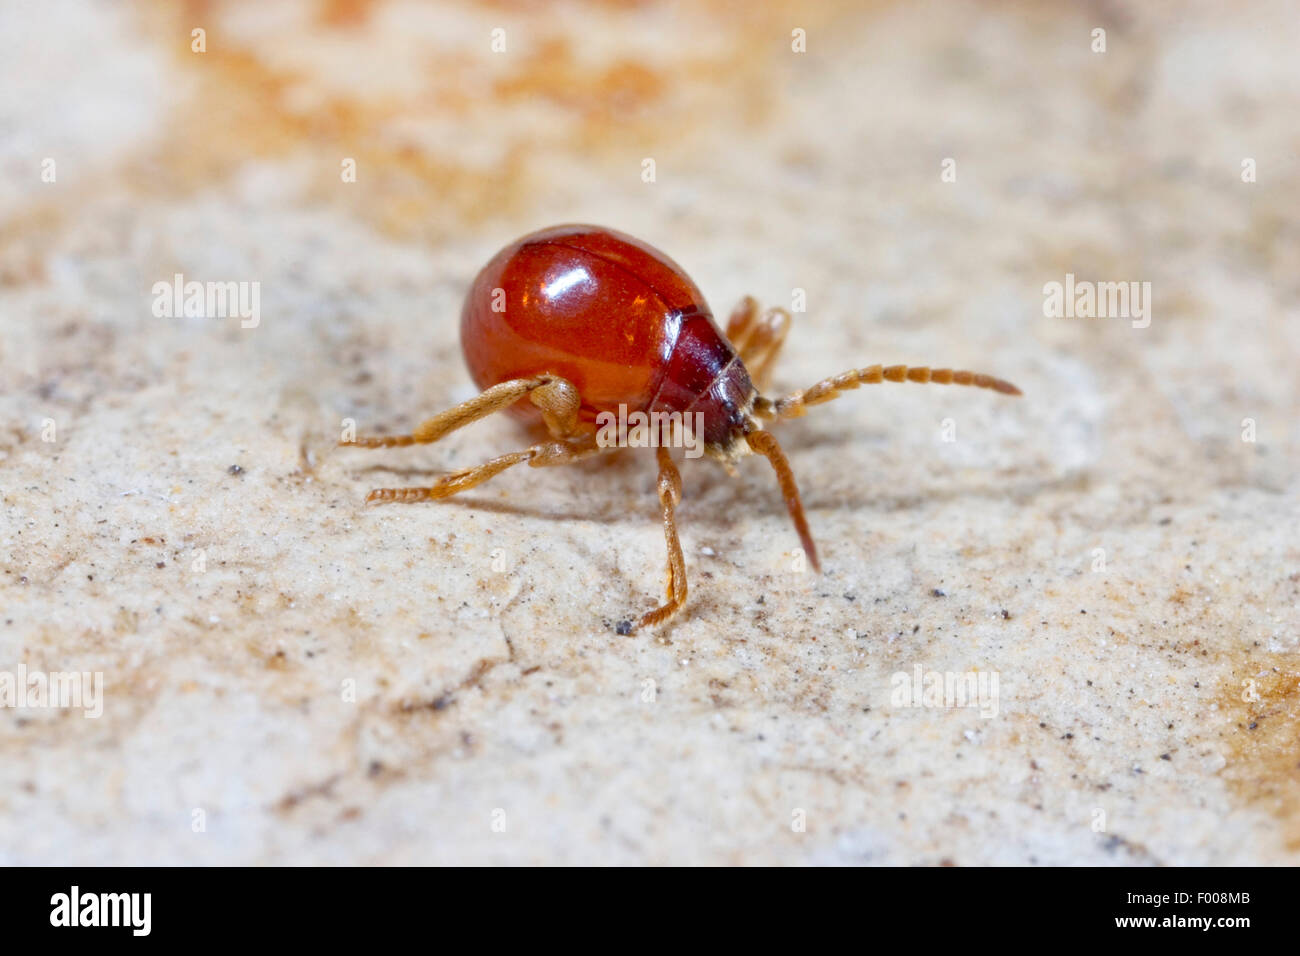 Smooth spider beetle, Hump beetle, Shiny spider beetle (Gibbium psylloides), on the ground, Germany - Stock Image